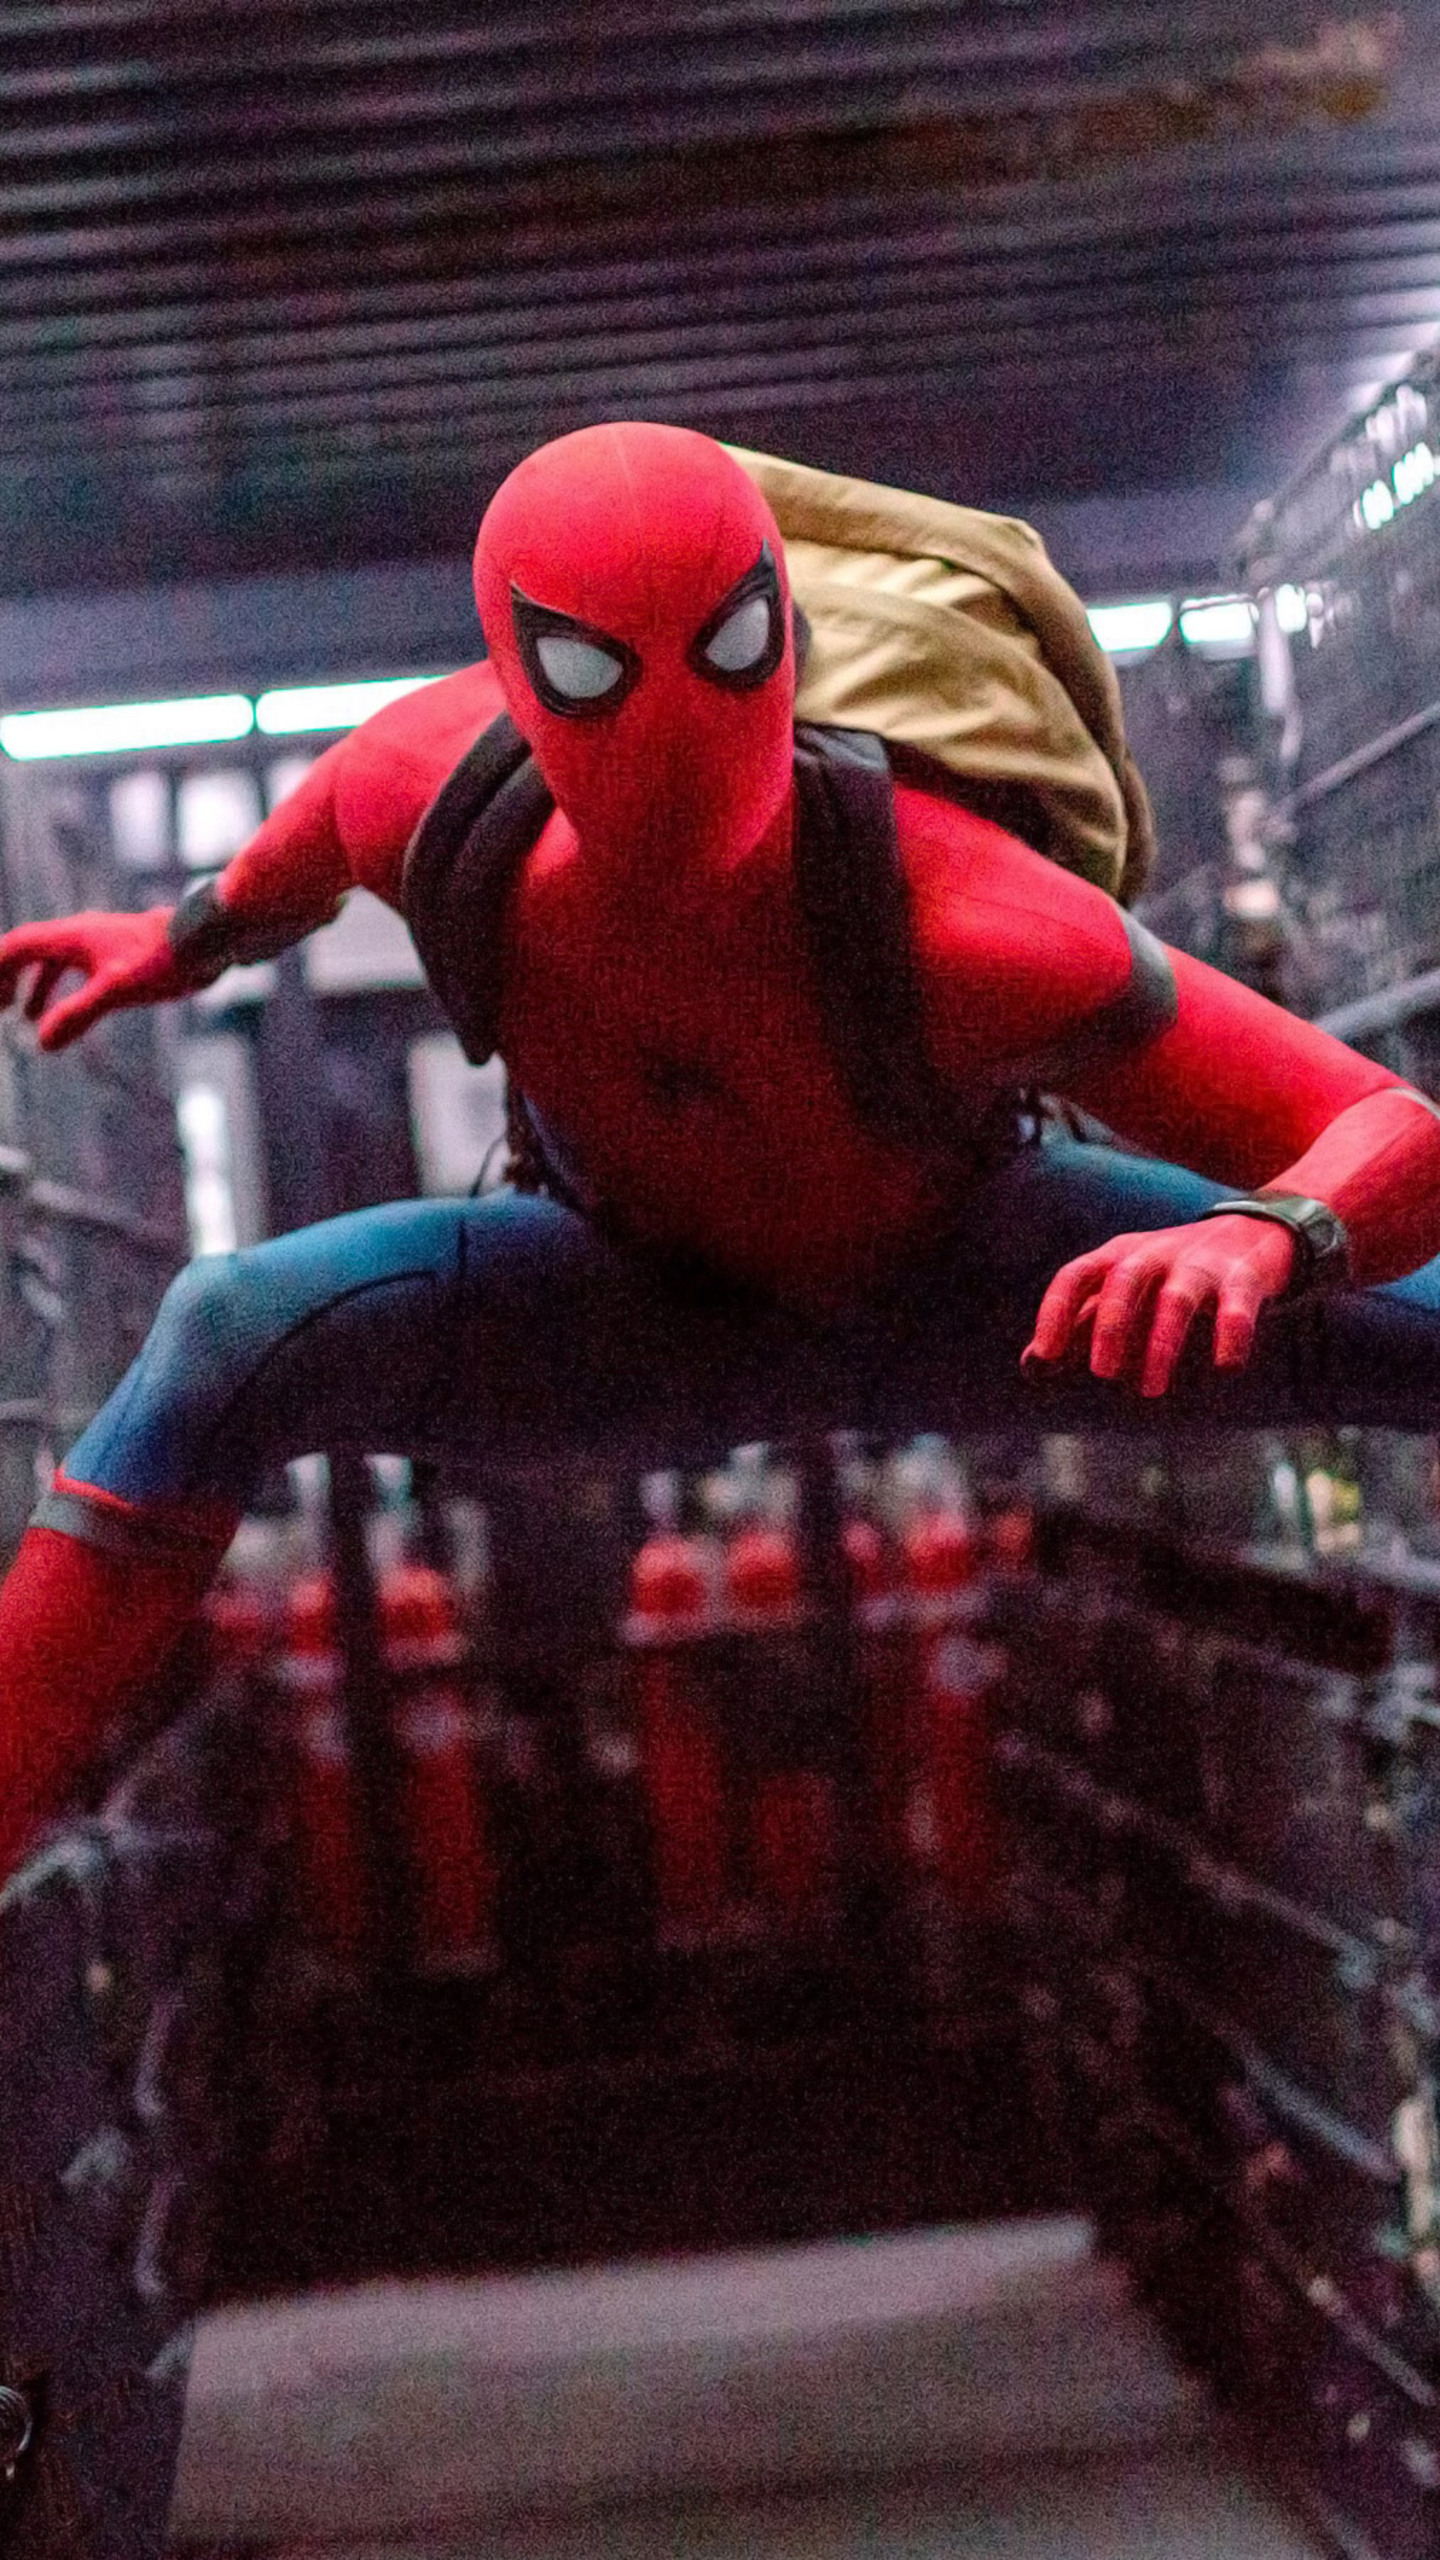 1440x2560 spider man homecoming samsung galaxy s6 s7 - Spider hd images download ...